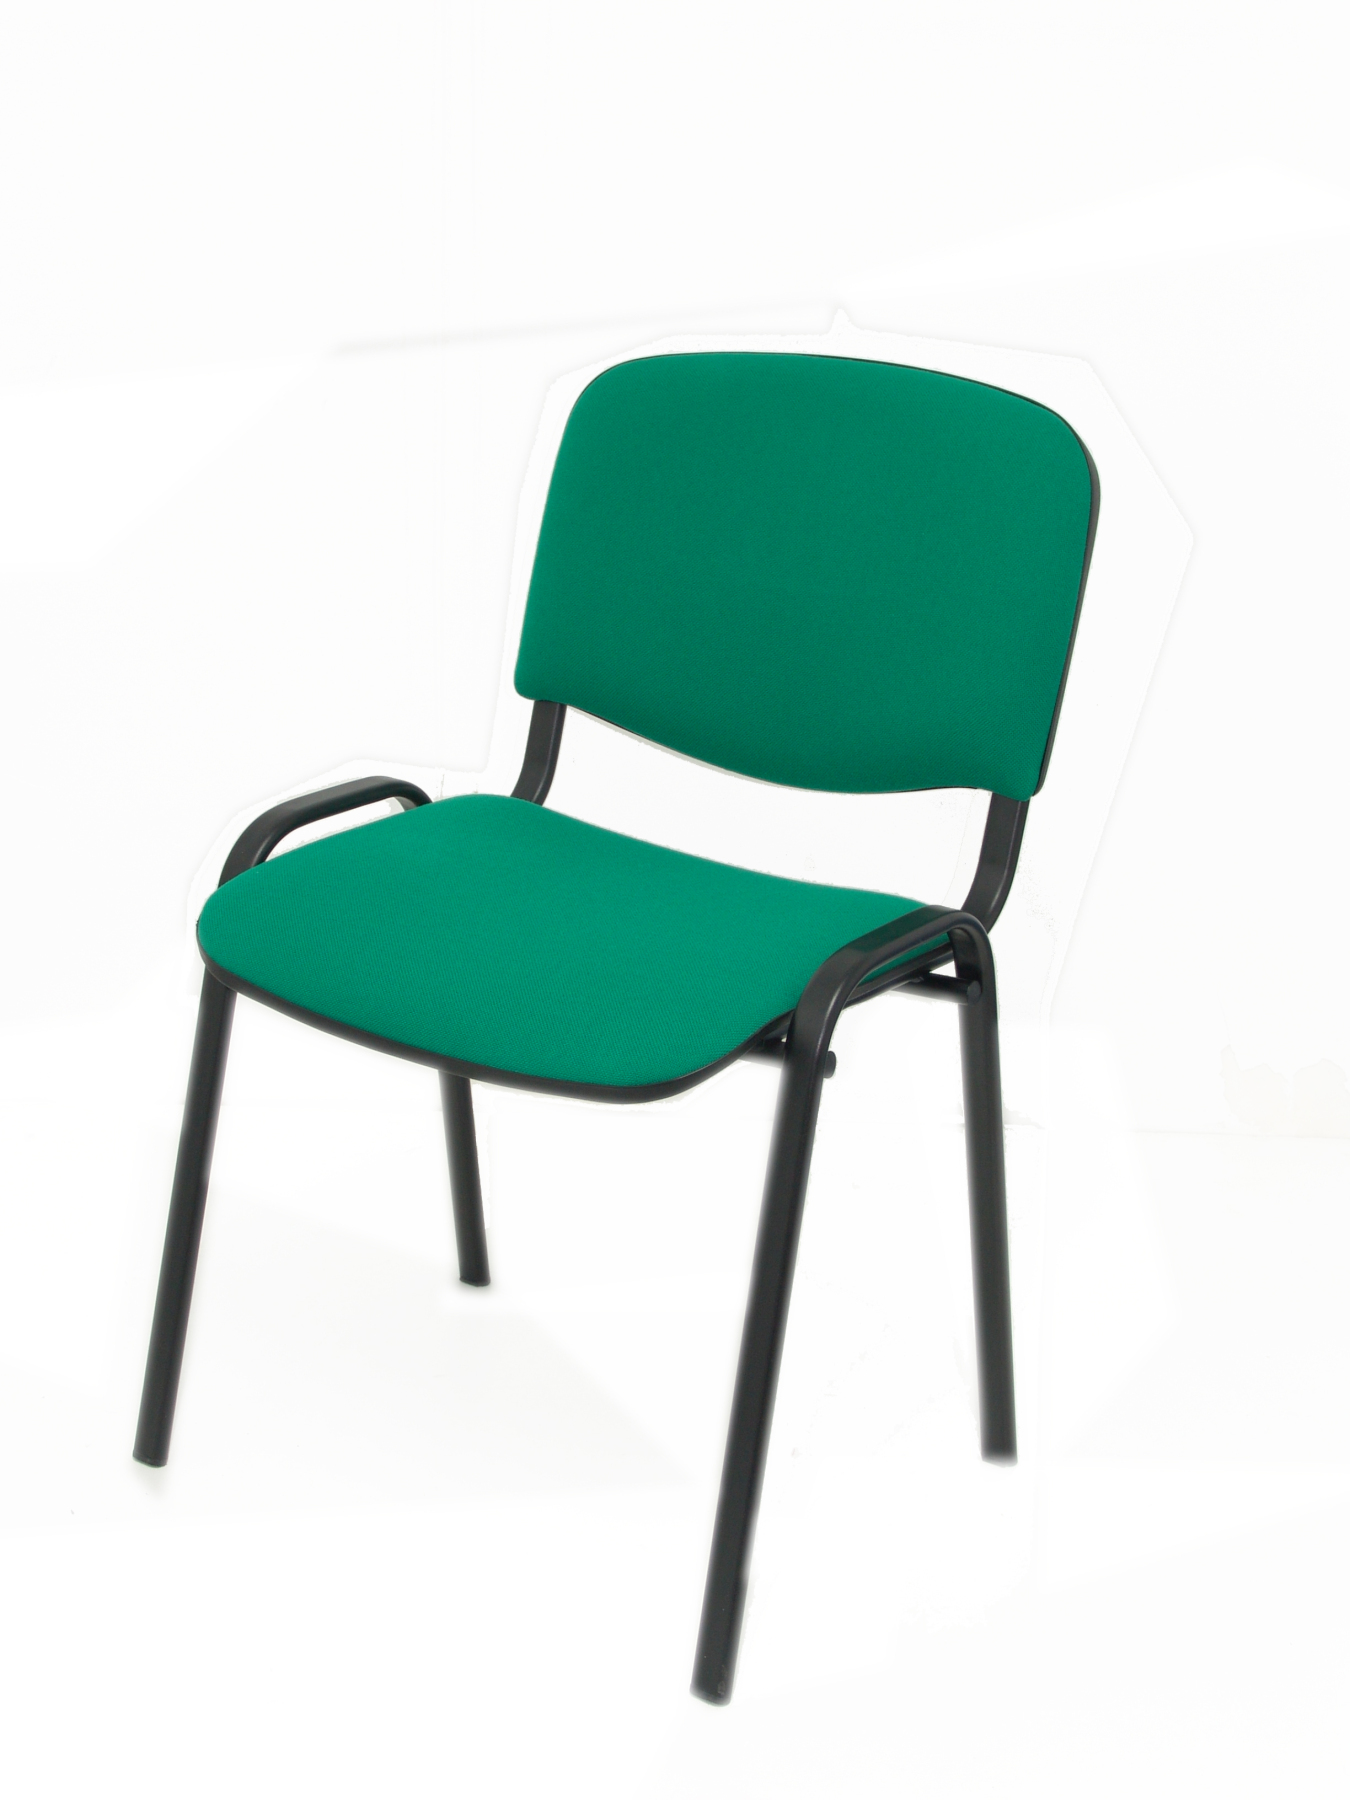 Pack 4 Chairs Confident Desk Ergonomic, Stackable, Multipurpose And Black Color Up Seat And Backstop Structure Upholstered